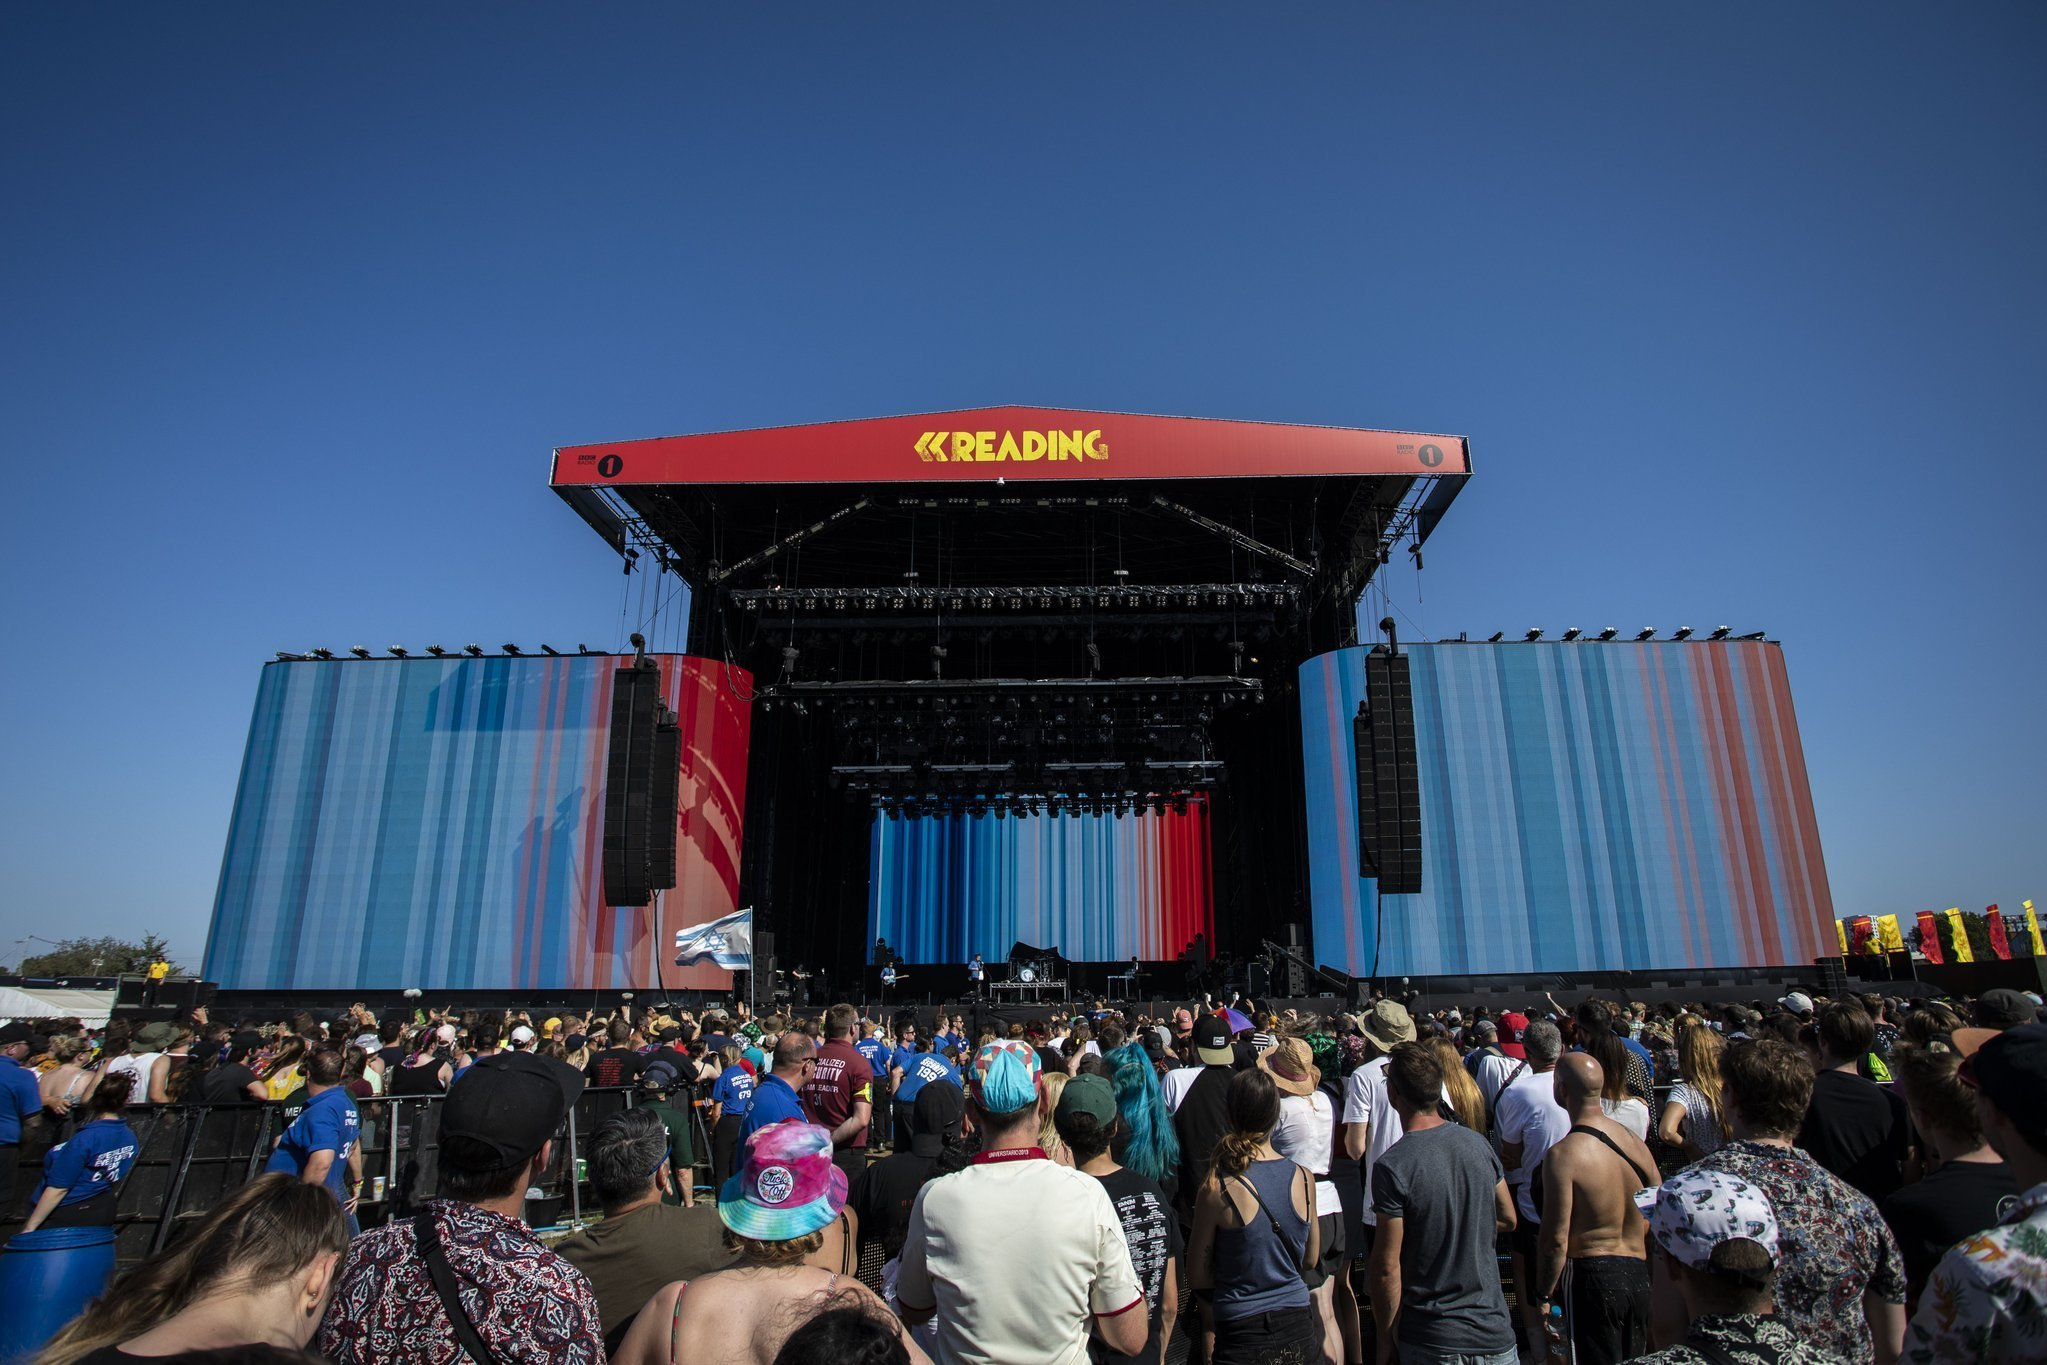 The front of a large festival stage that has 3 large screens, 1 on each side of the stage and 1 at the back. The screens show how the average global temperatures have risen since 1850, in the form of blue stripes for cooler years and red for hotter years.